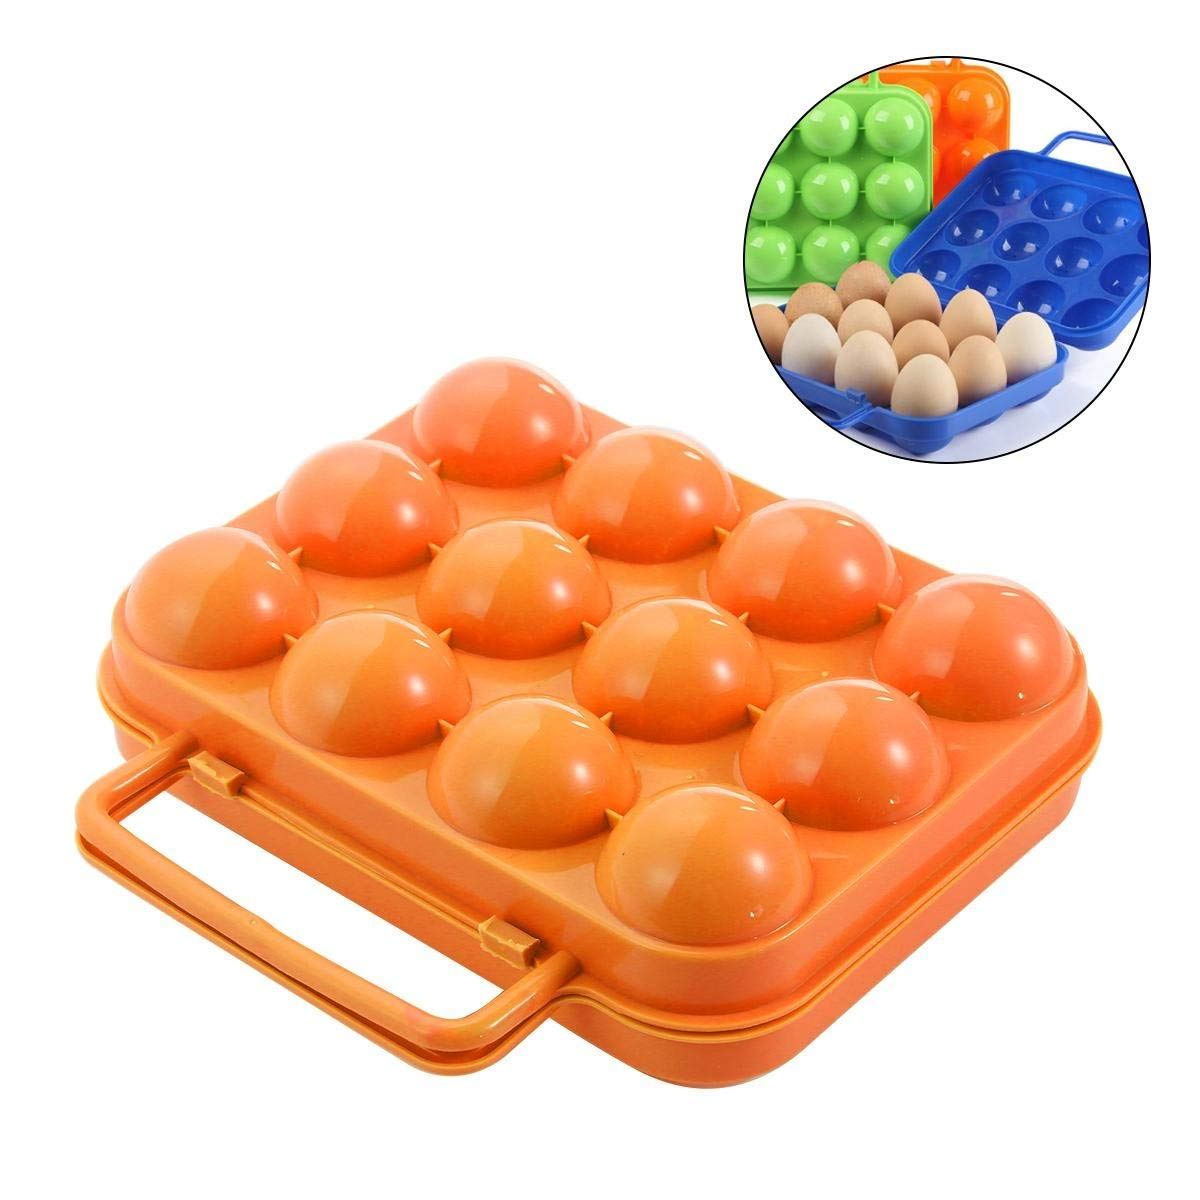 Umiwe Outdoor Egg Storage Box, Portable Egg Case Carrier Holder Folding Plastic Container with Handle for Hiking Camping Picnic